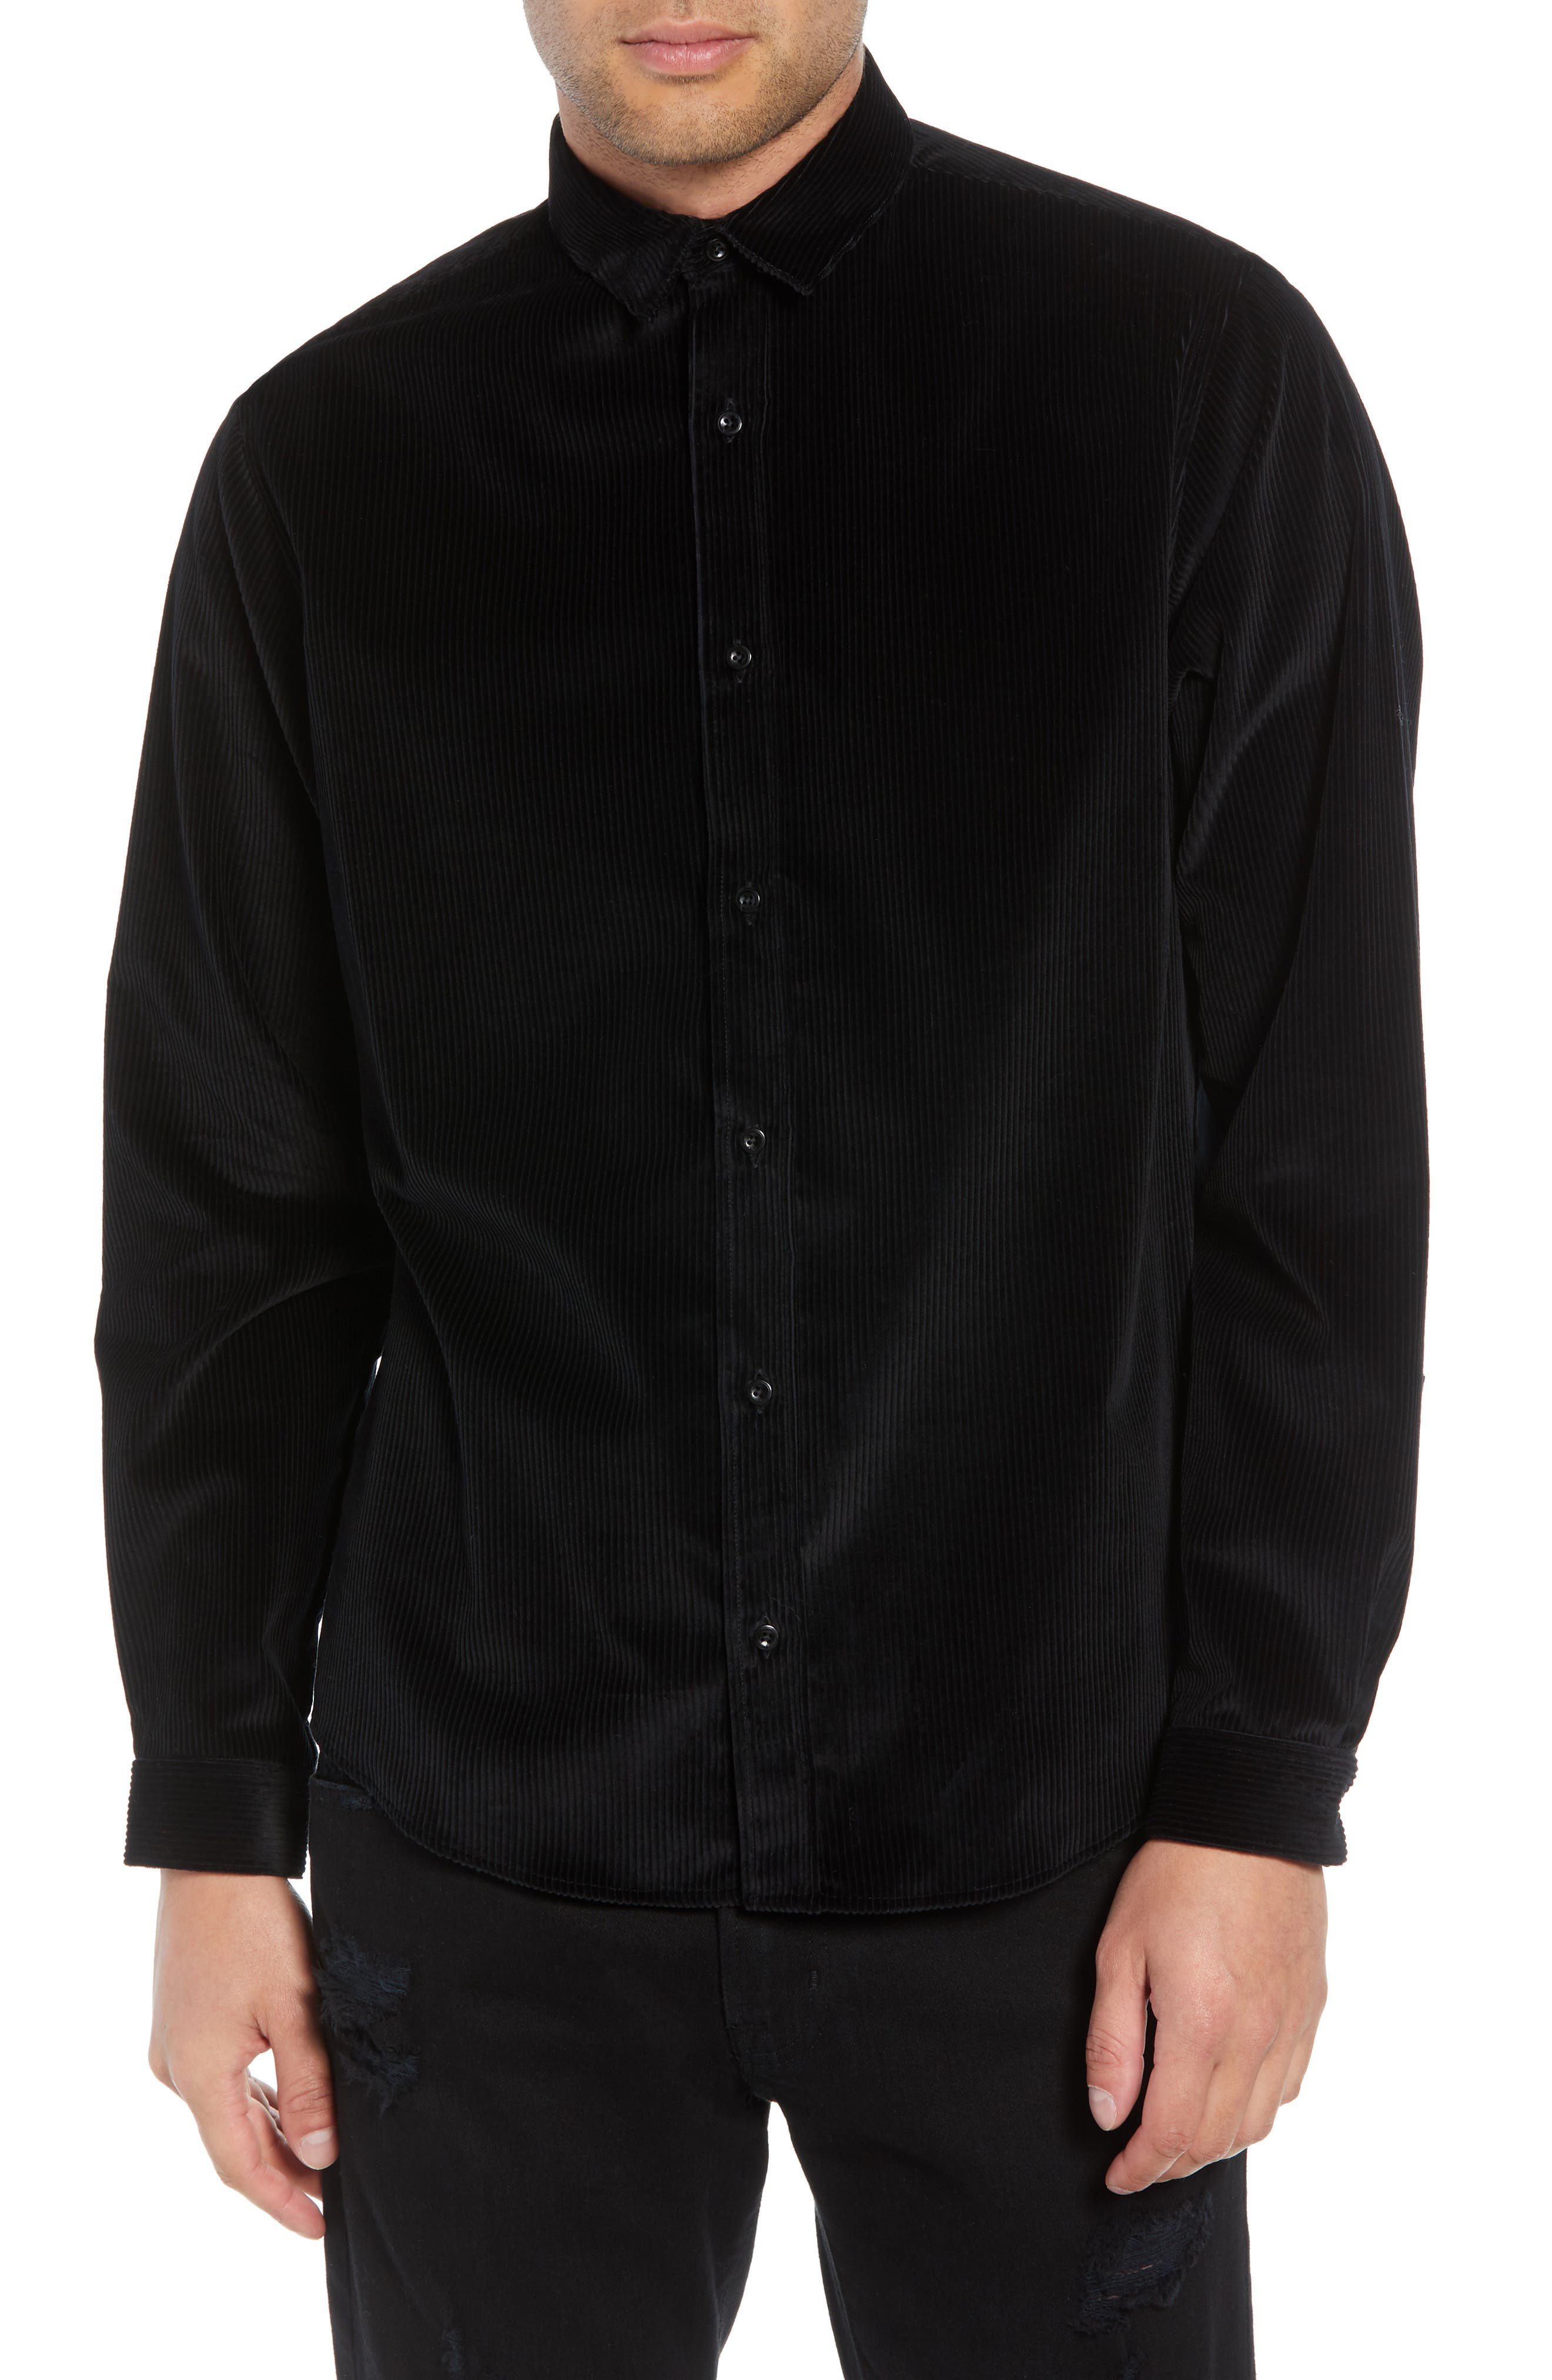 THE KOOPLES Lizzy Ribbed Regular Fit Button-Down Shirt in Black